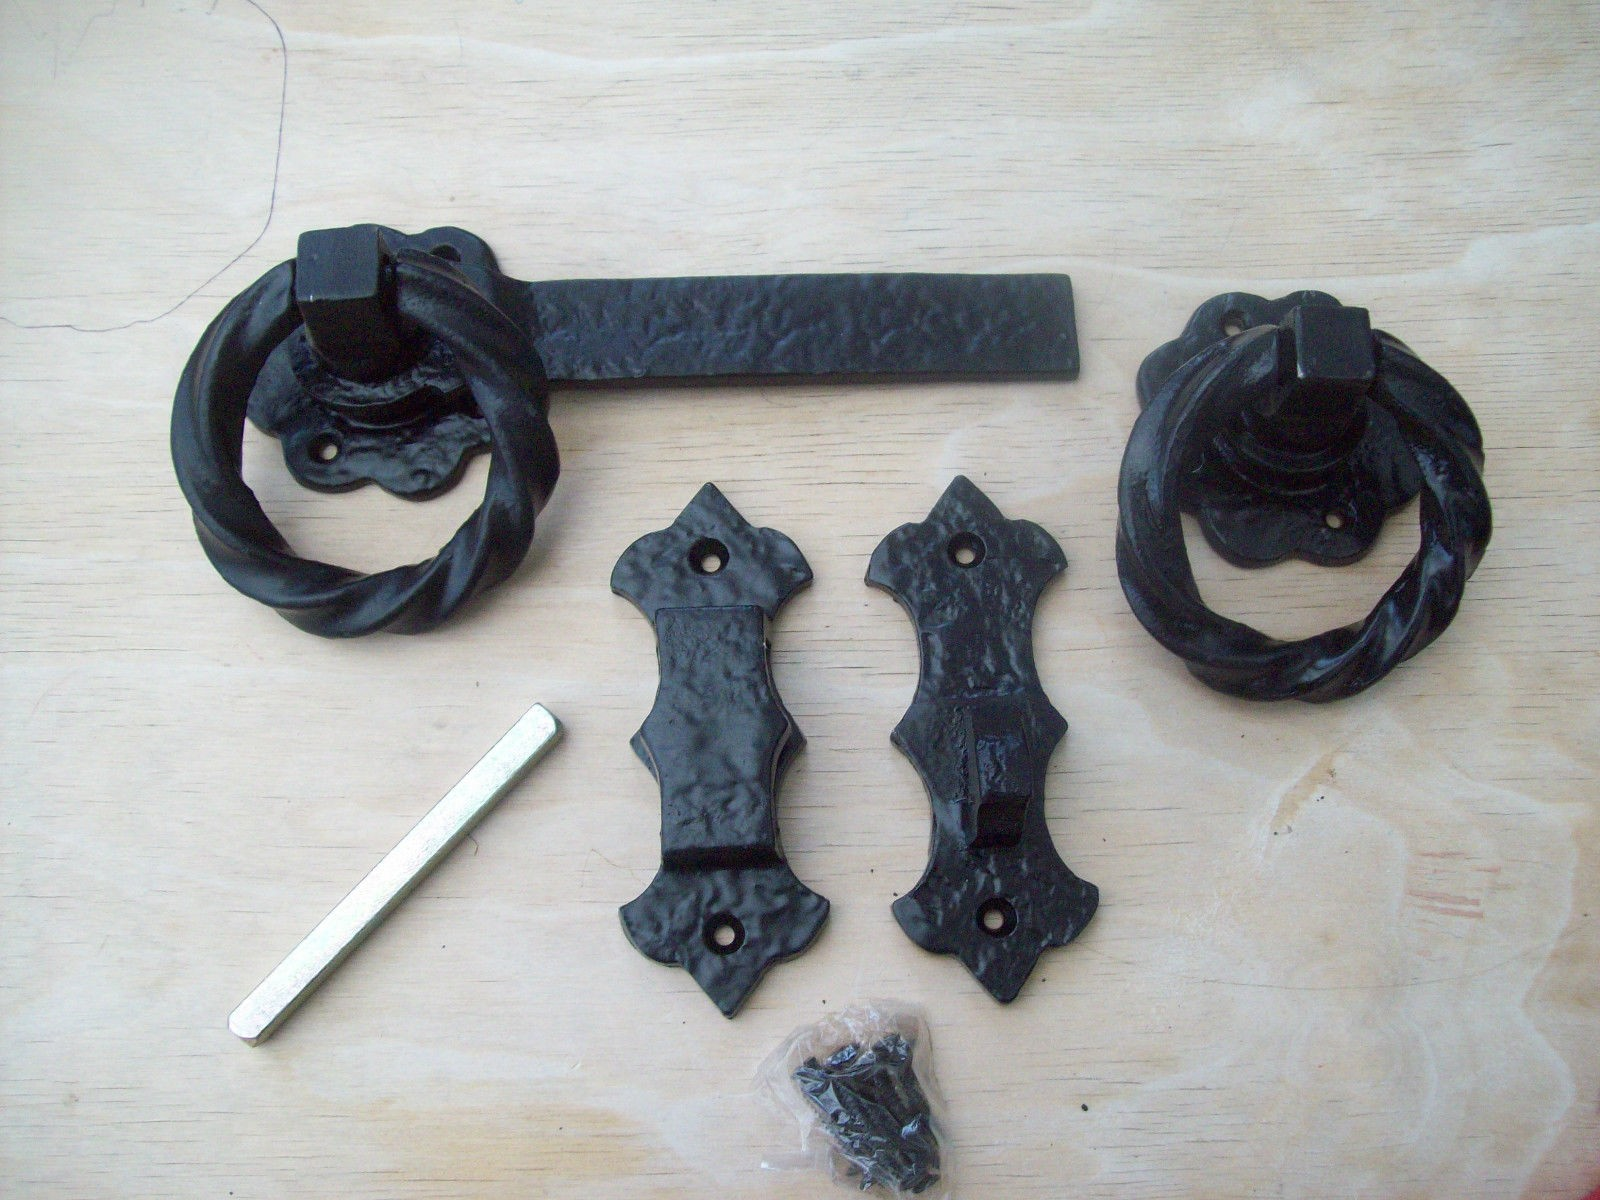 Black Antique Cast Iron Fancy Twisted Garden Gate Door